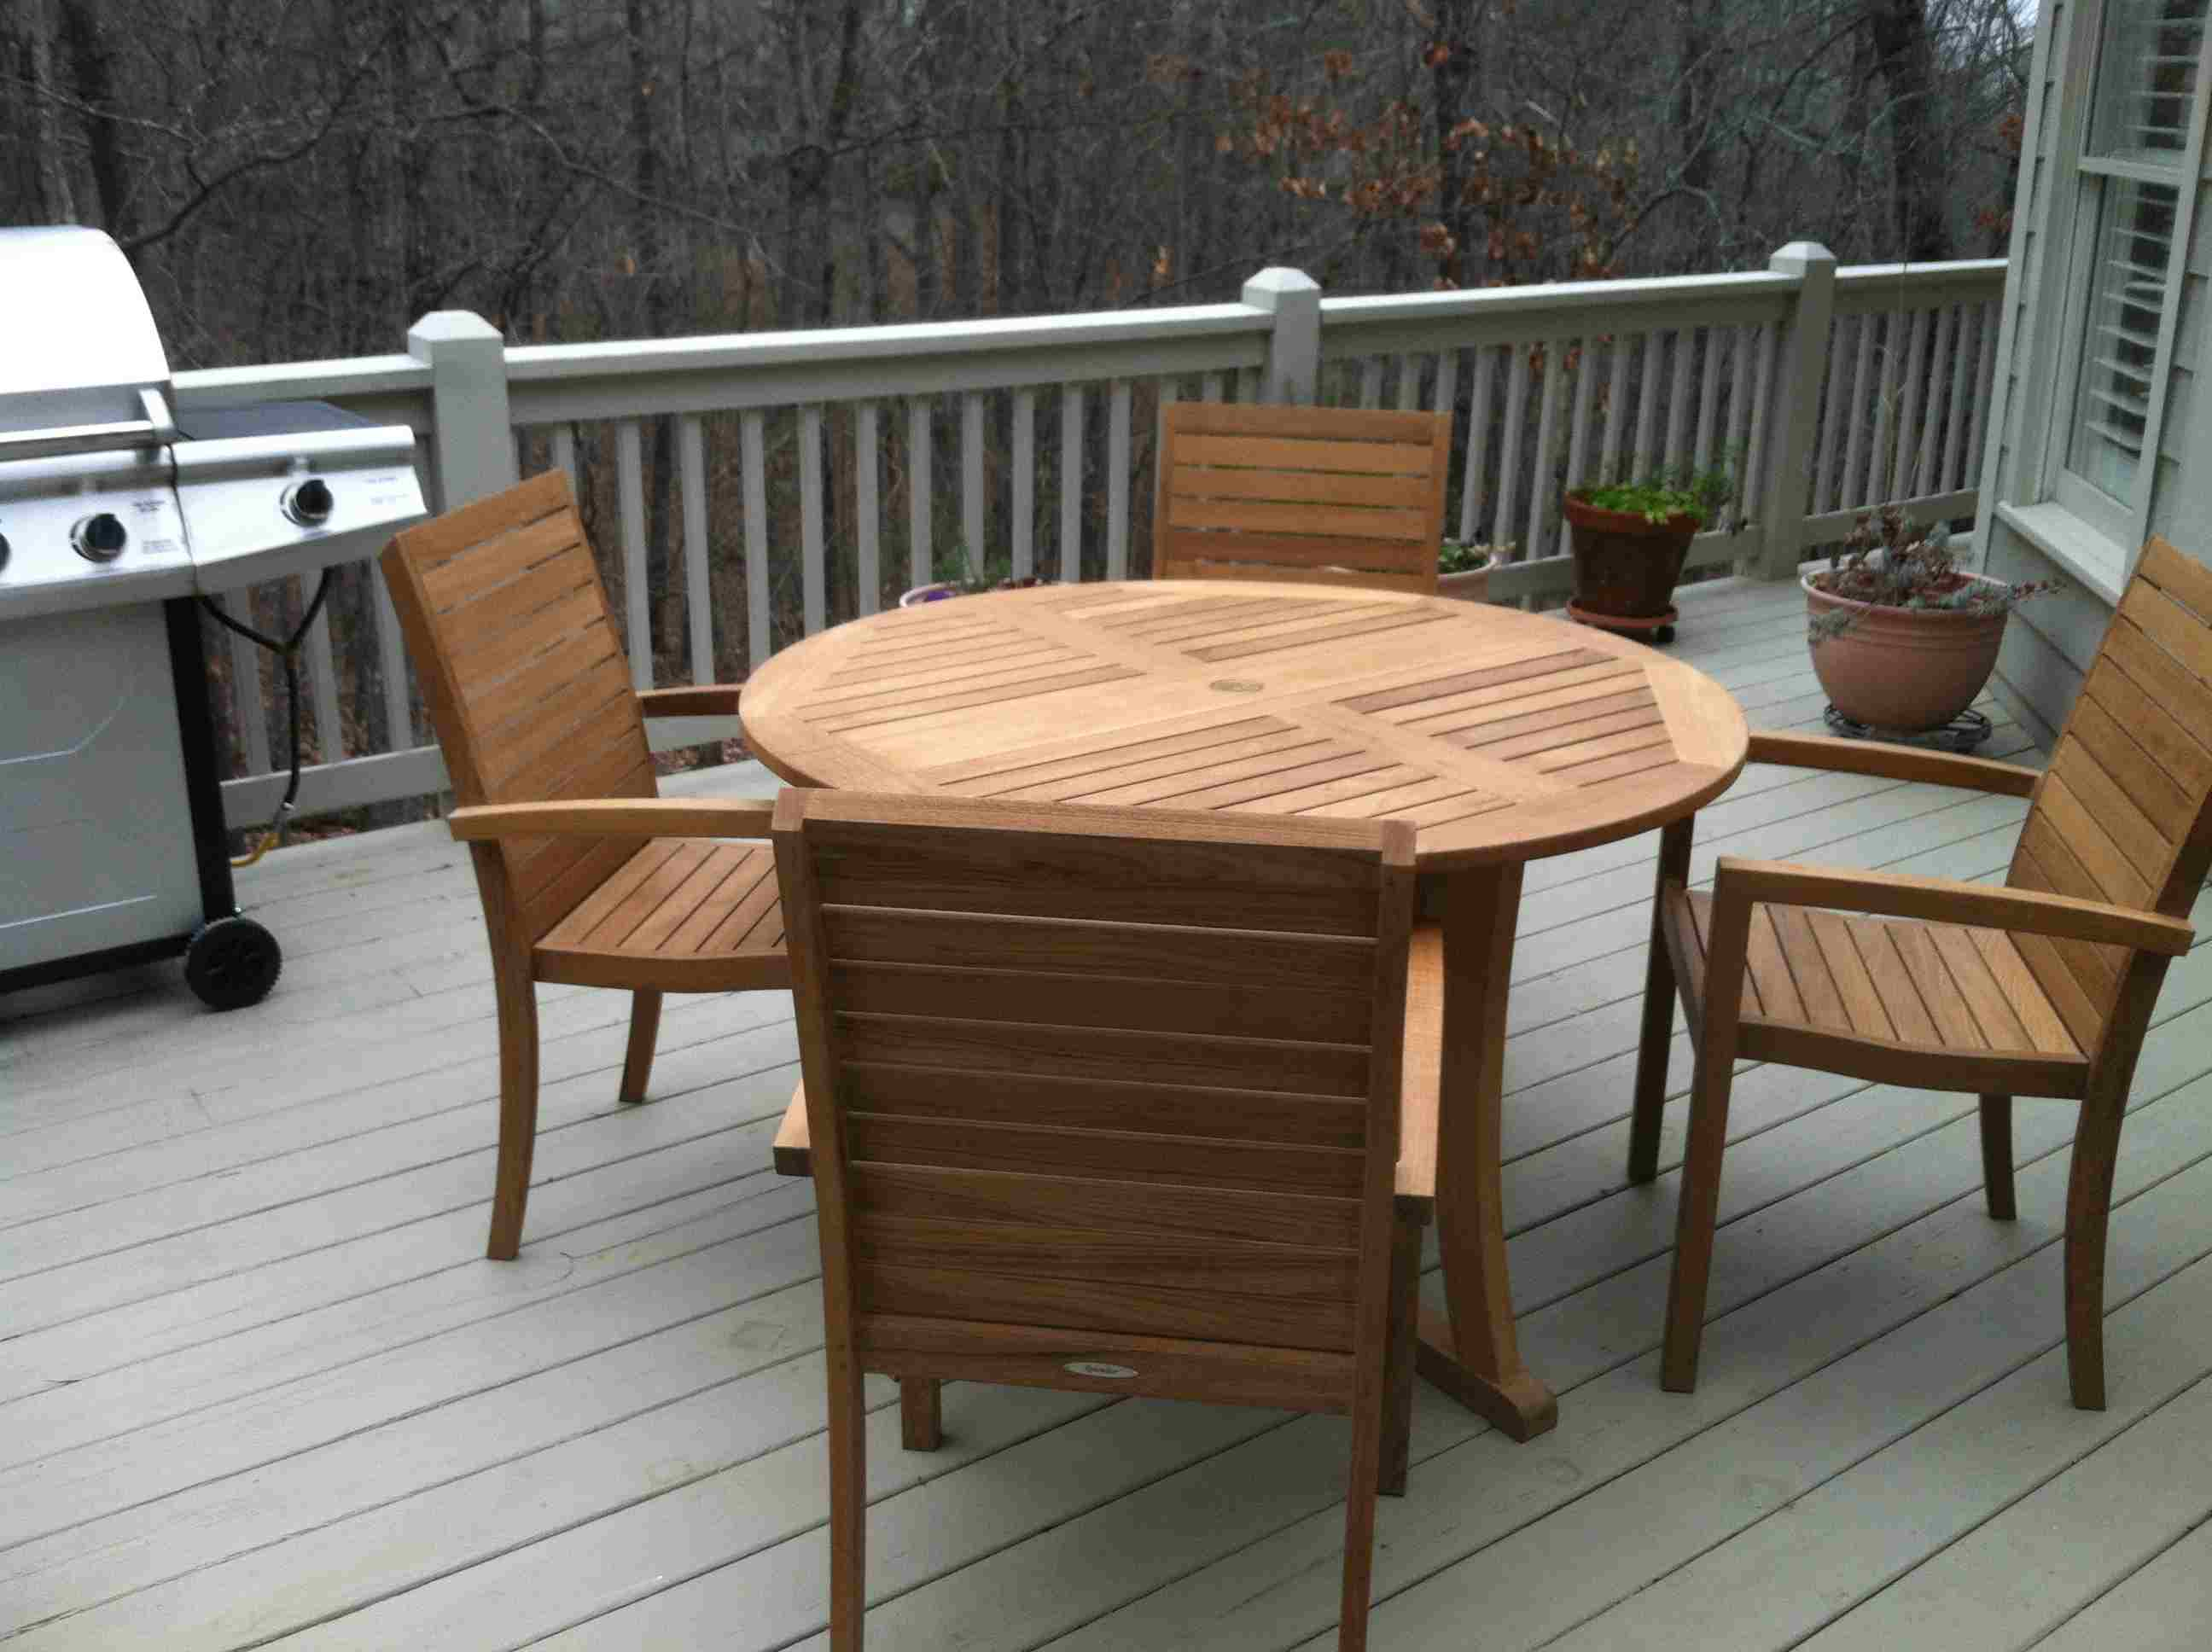 Patio dining sets near me patio dining sets near me for Dinette sets near me